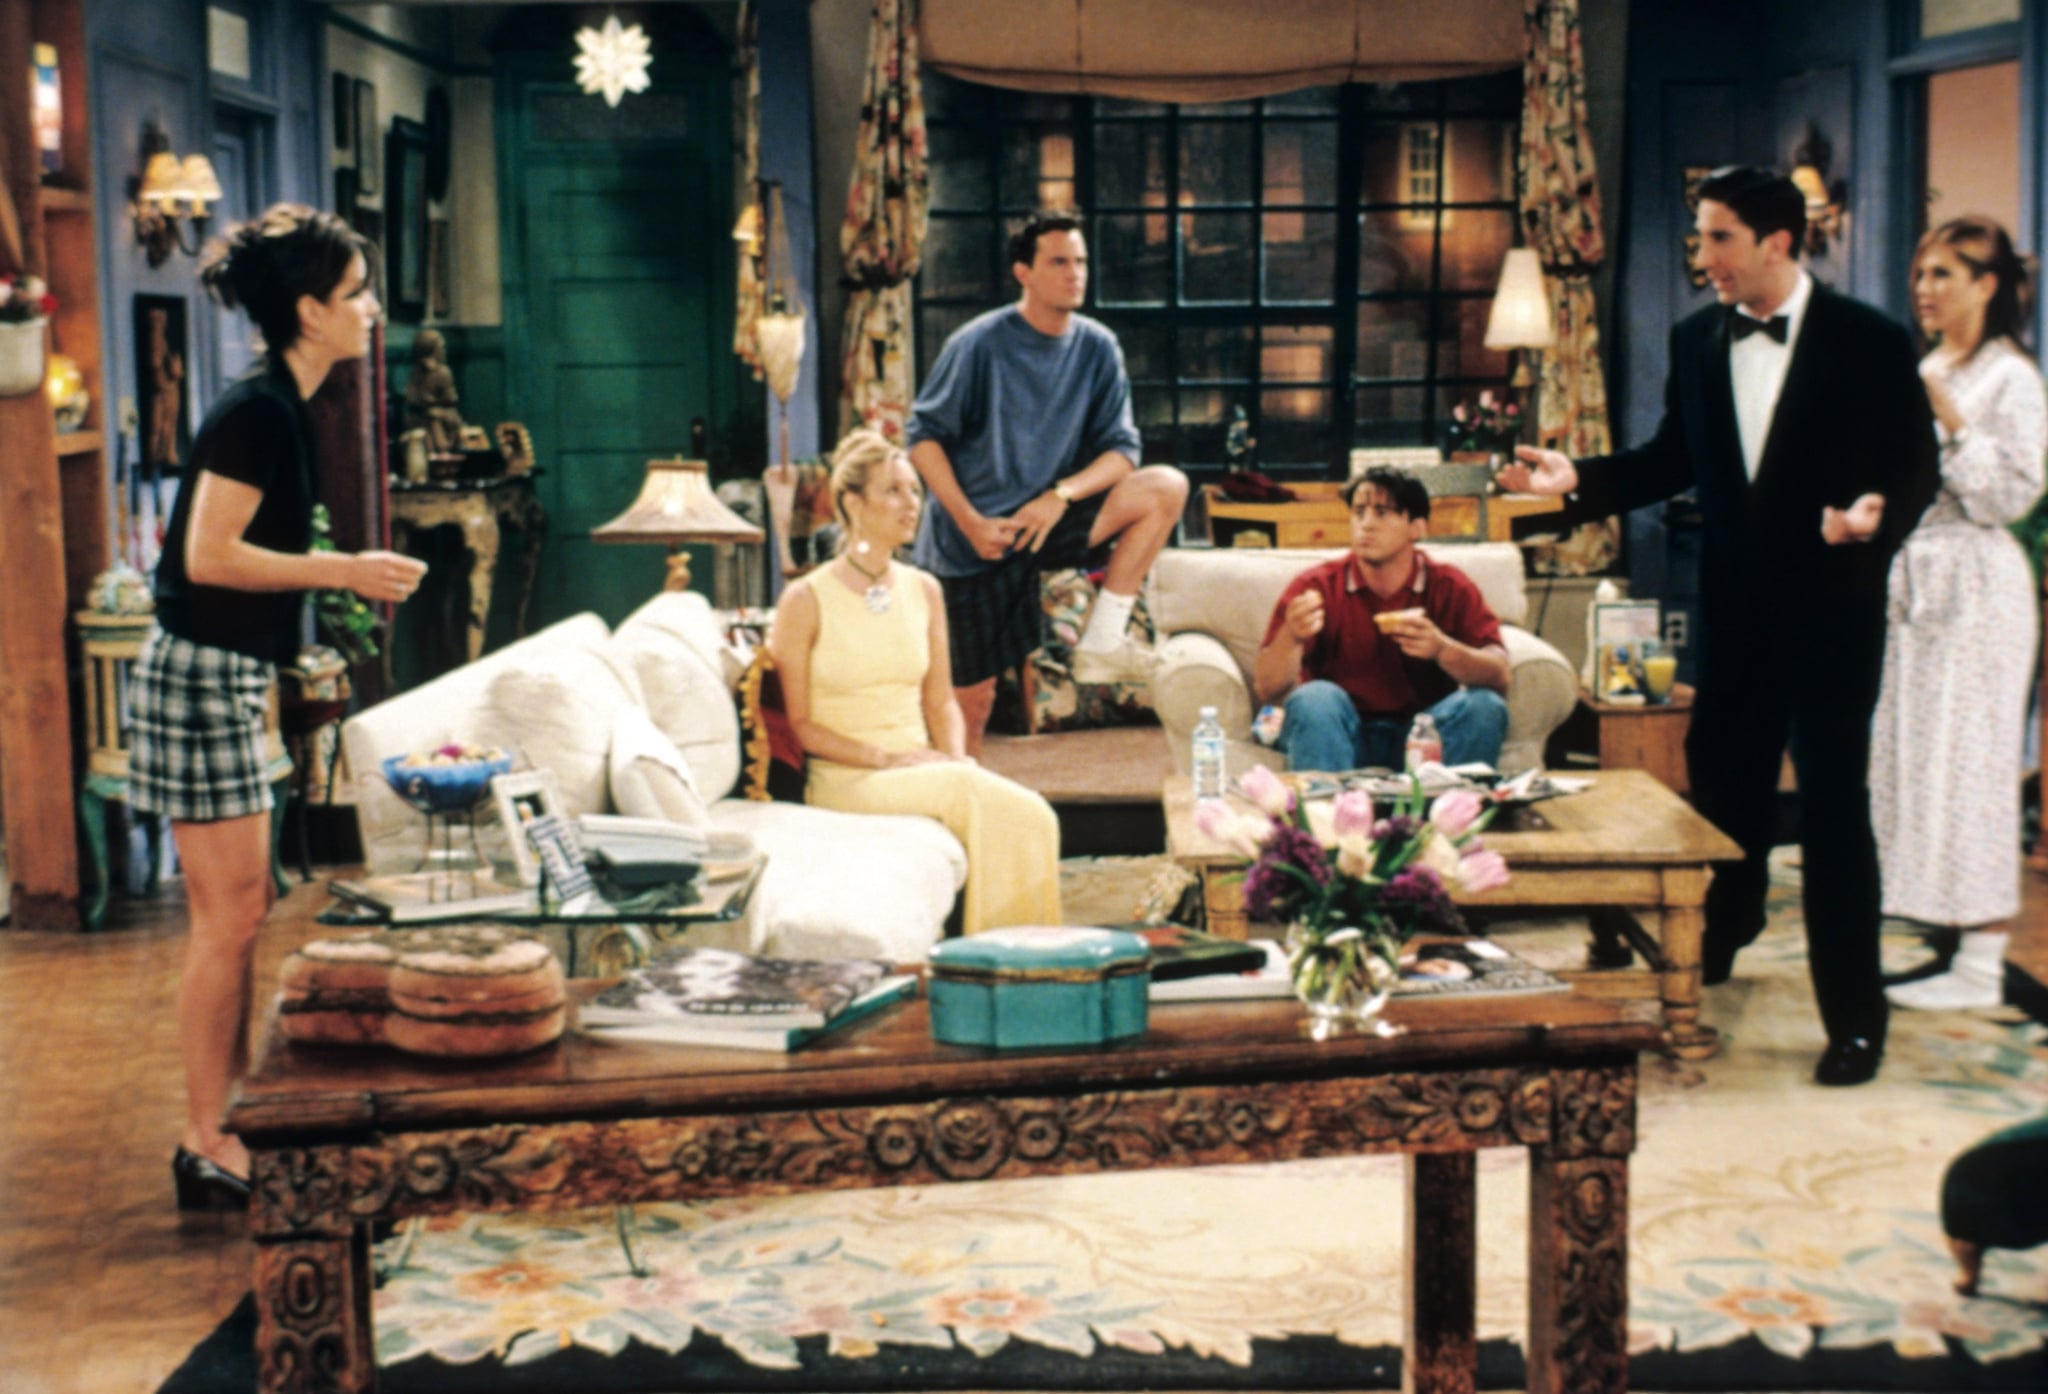 FRIENDS, from left: Courteney Cox, Lisa Kudrow, Matthew Perry, Matt LeBlanc, David Schwimmer, Jennifer Aniston, 'The One Where No One's Ready', (Season 3, ep. 302, aired Sept. 26, 1996), 1994-2004. photo: Warner Bros. / Courtesy: Everett Collection